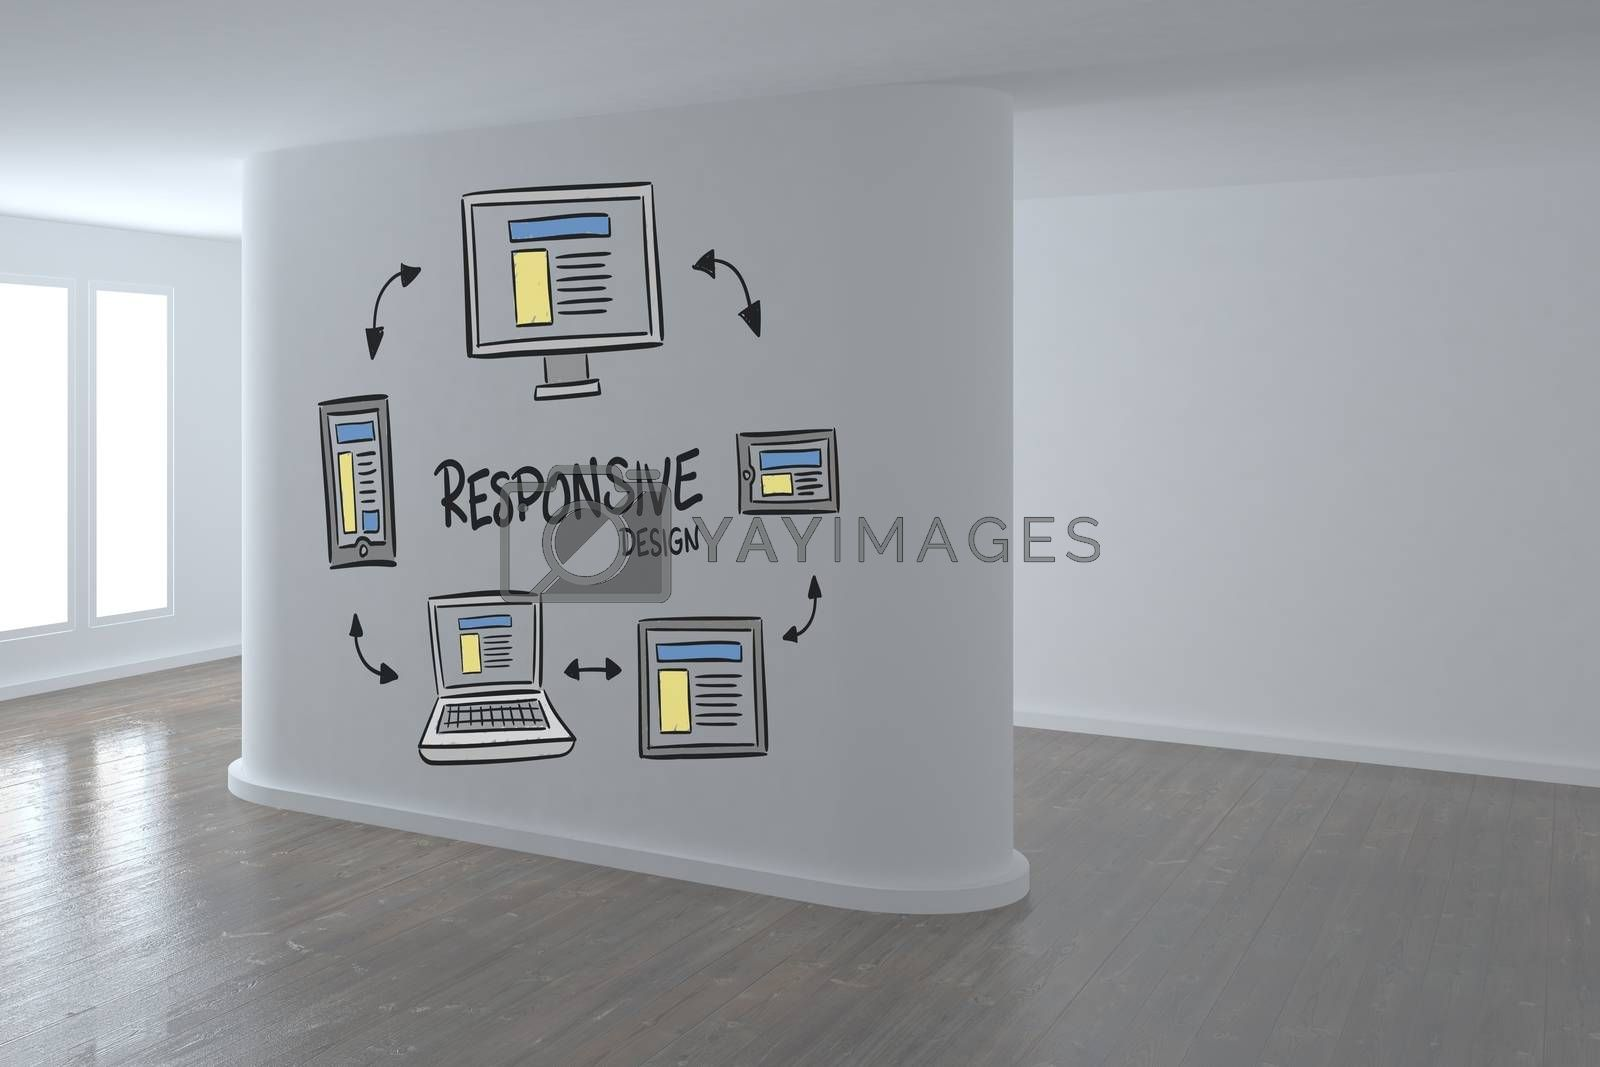 Conceptual graphic on 3D room wall by Wavebreakmedia